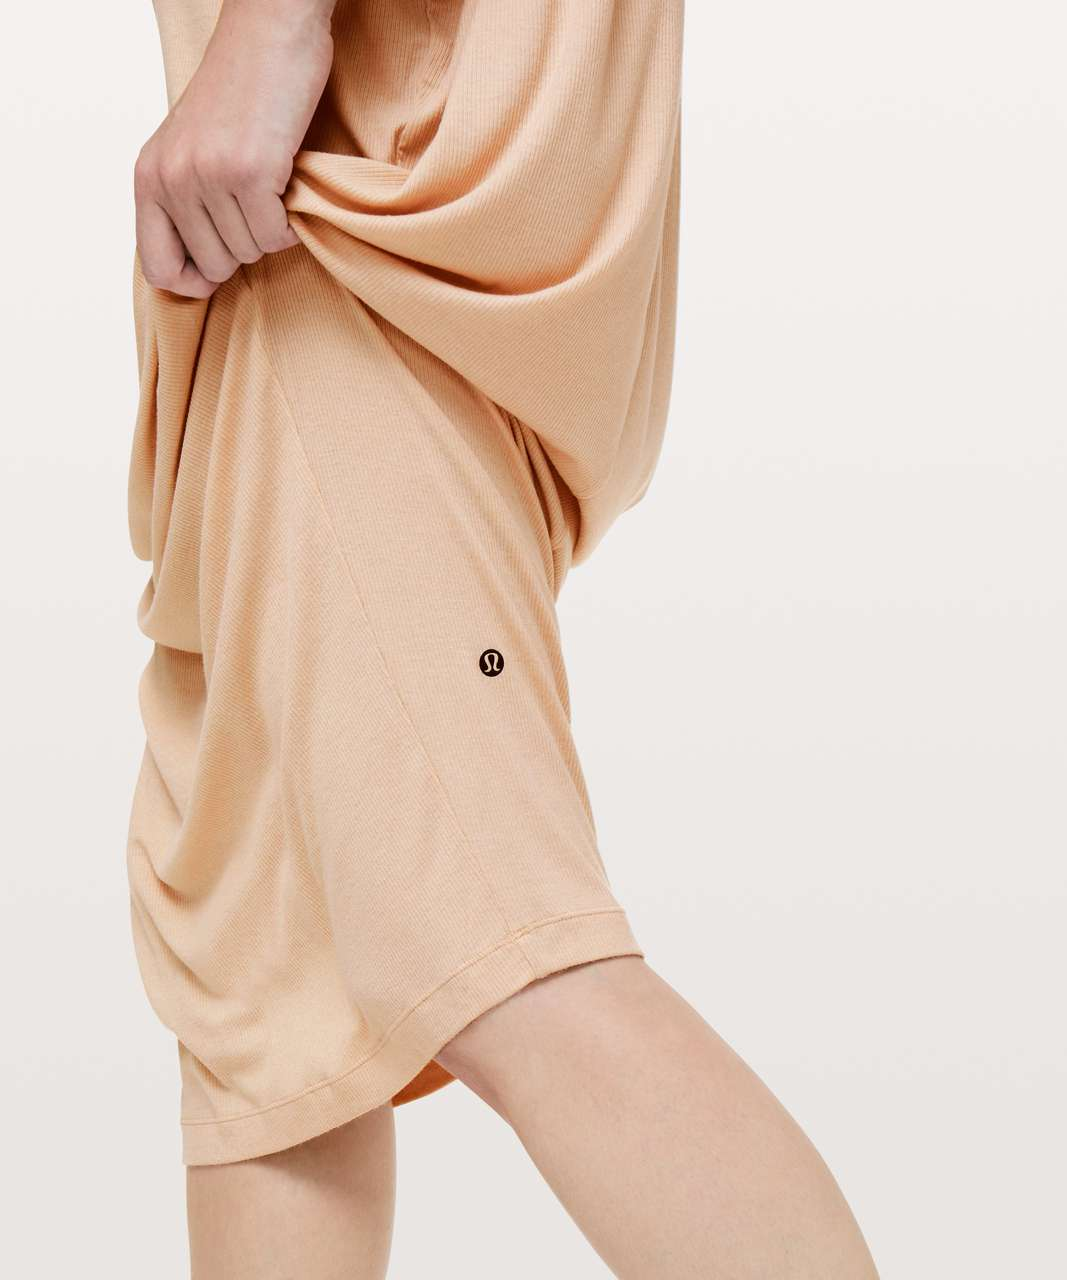 Lululemon Nan Dress *lululemon lab - Naked